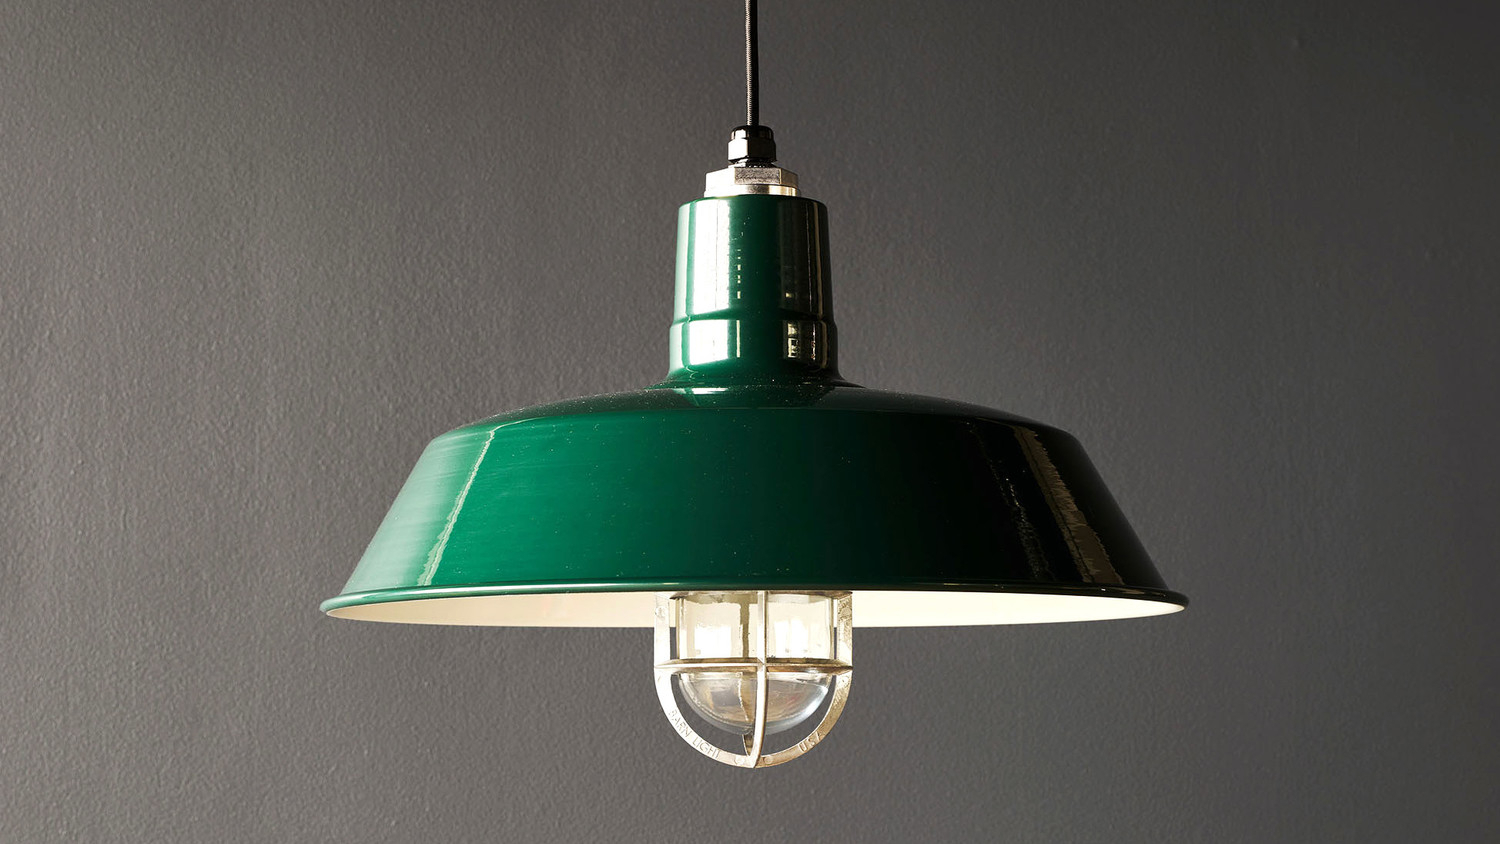 New Savings On Langley Street Knoxville 1 Light Single In Knoxville 1 Light Single Teardrop Pendants (View 19 of 30)